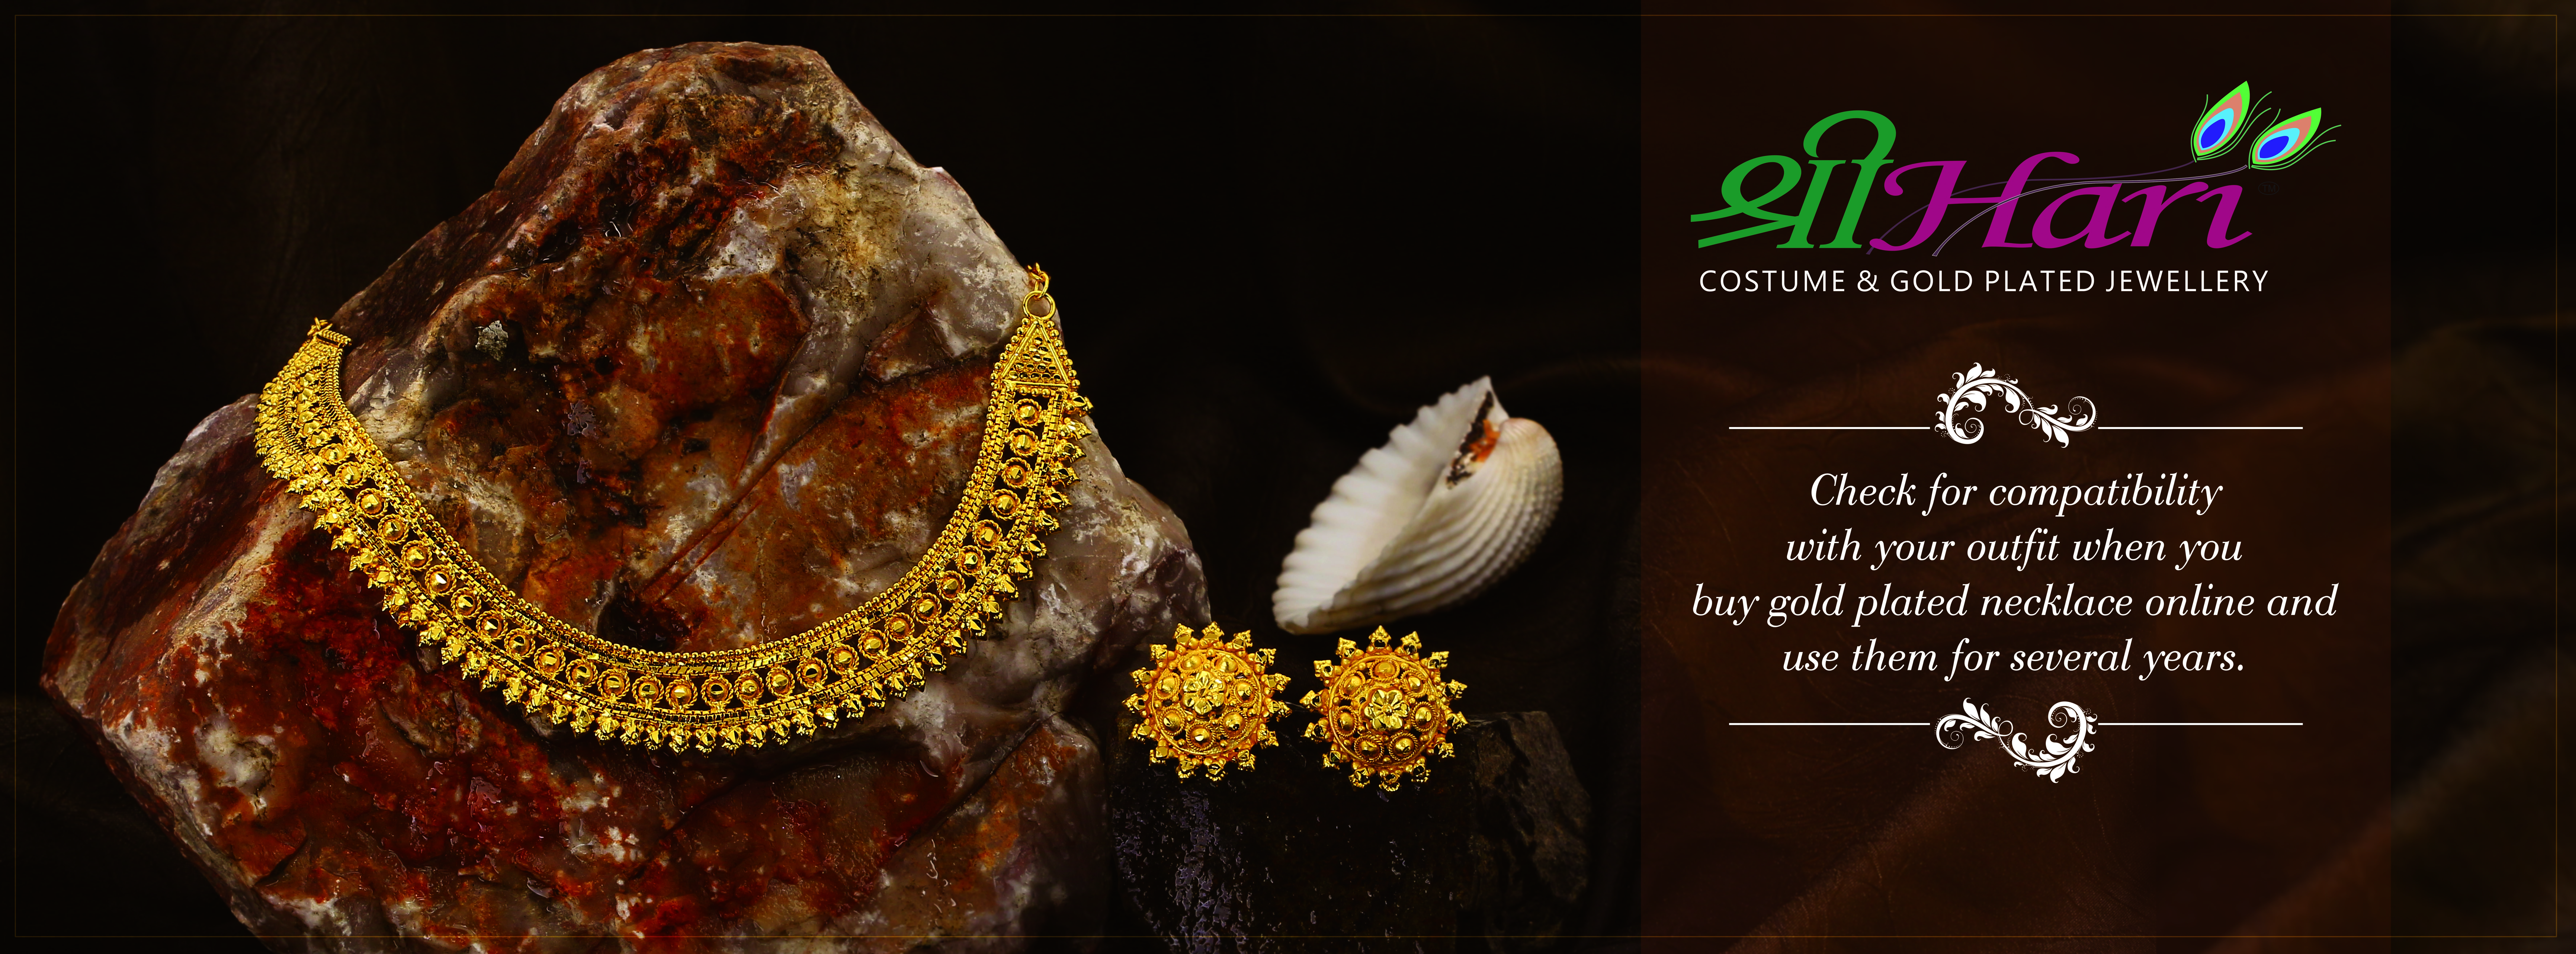 ST1688 RS 690 00 at ShreeHari Gold Plated Necklace